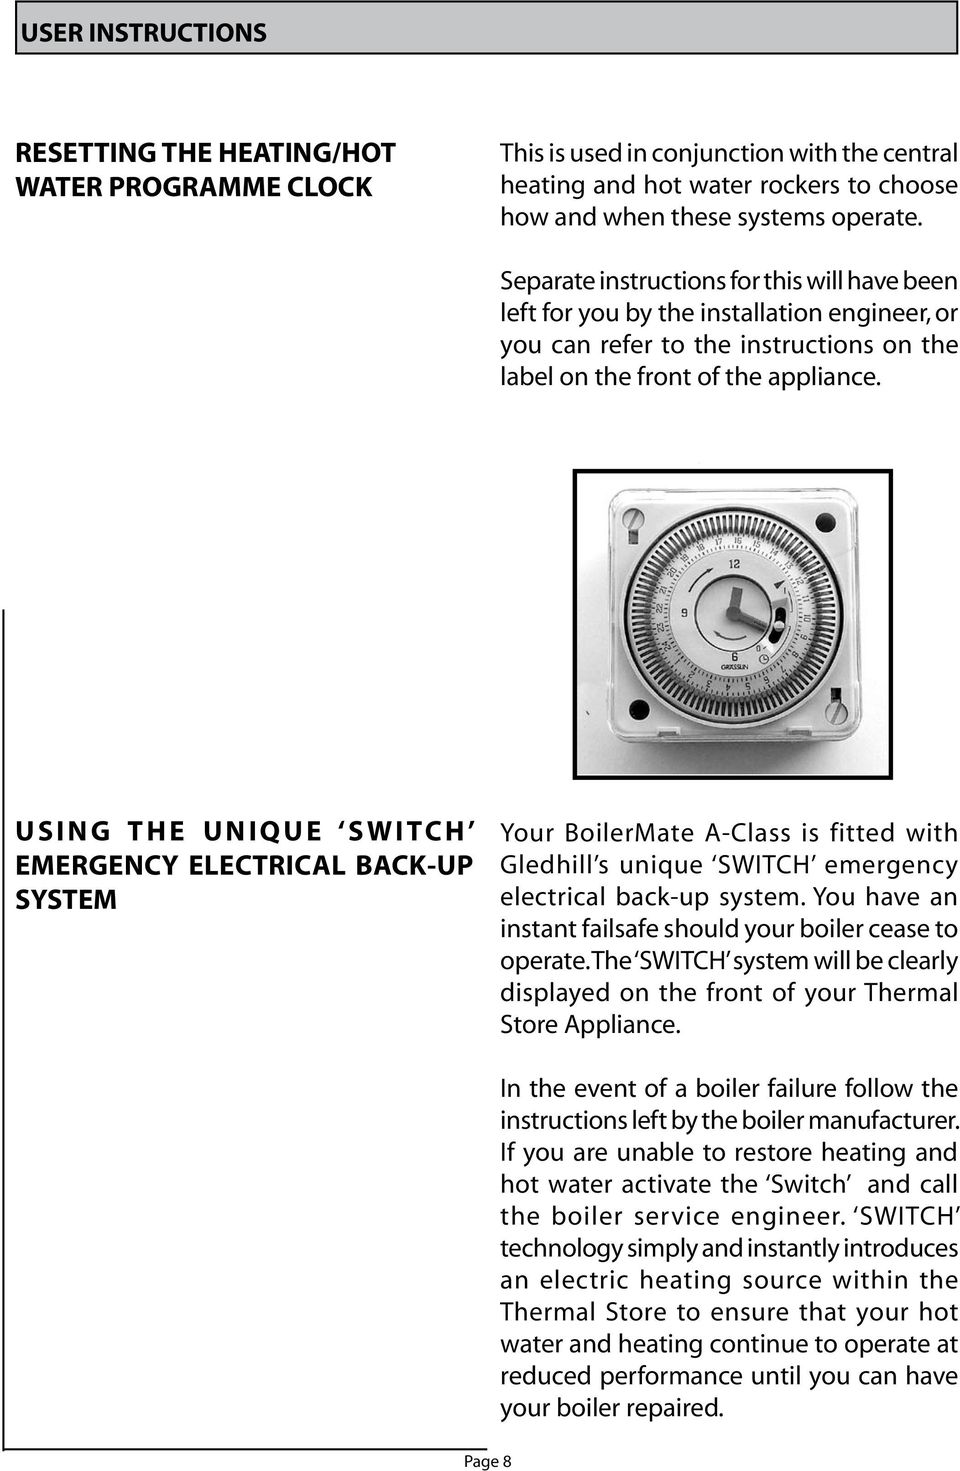 Boilermate sp benchmark user instructions a c l a s s pdf u s i n g t h e u n i q u e s w i tc h emergency electrical back up system your boilermate a class is fitted asfbconference2016 Images